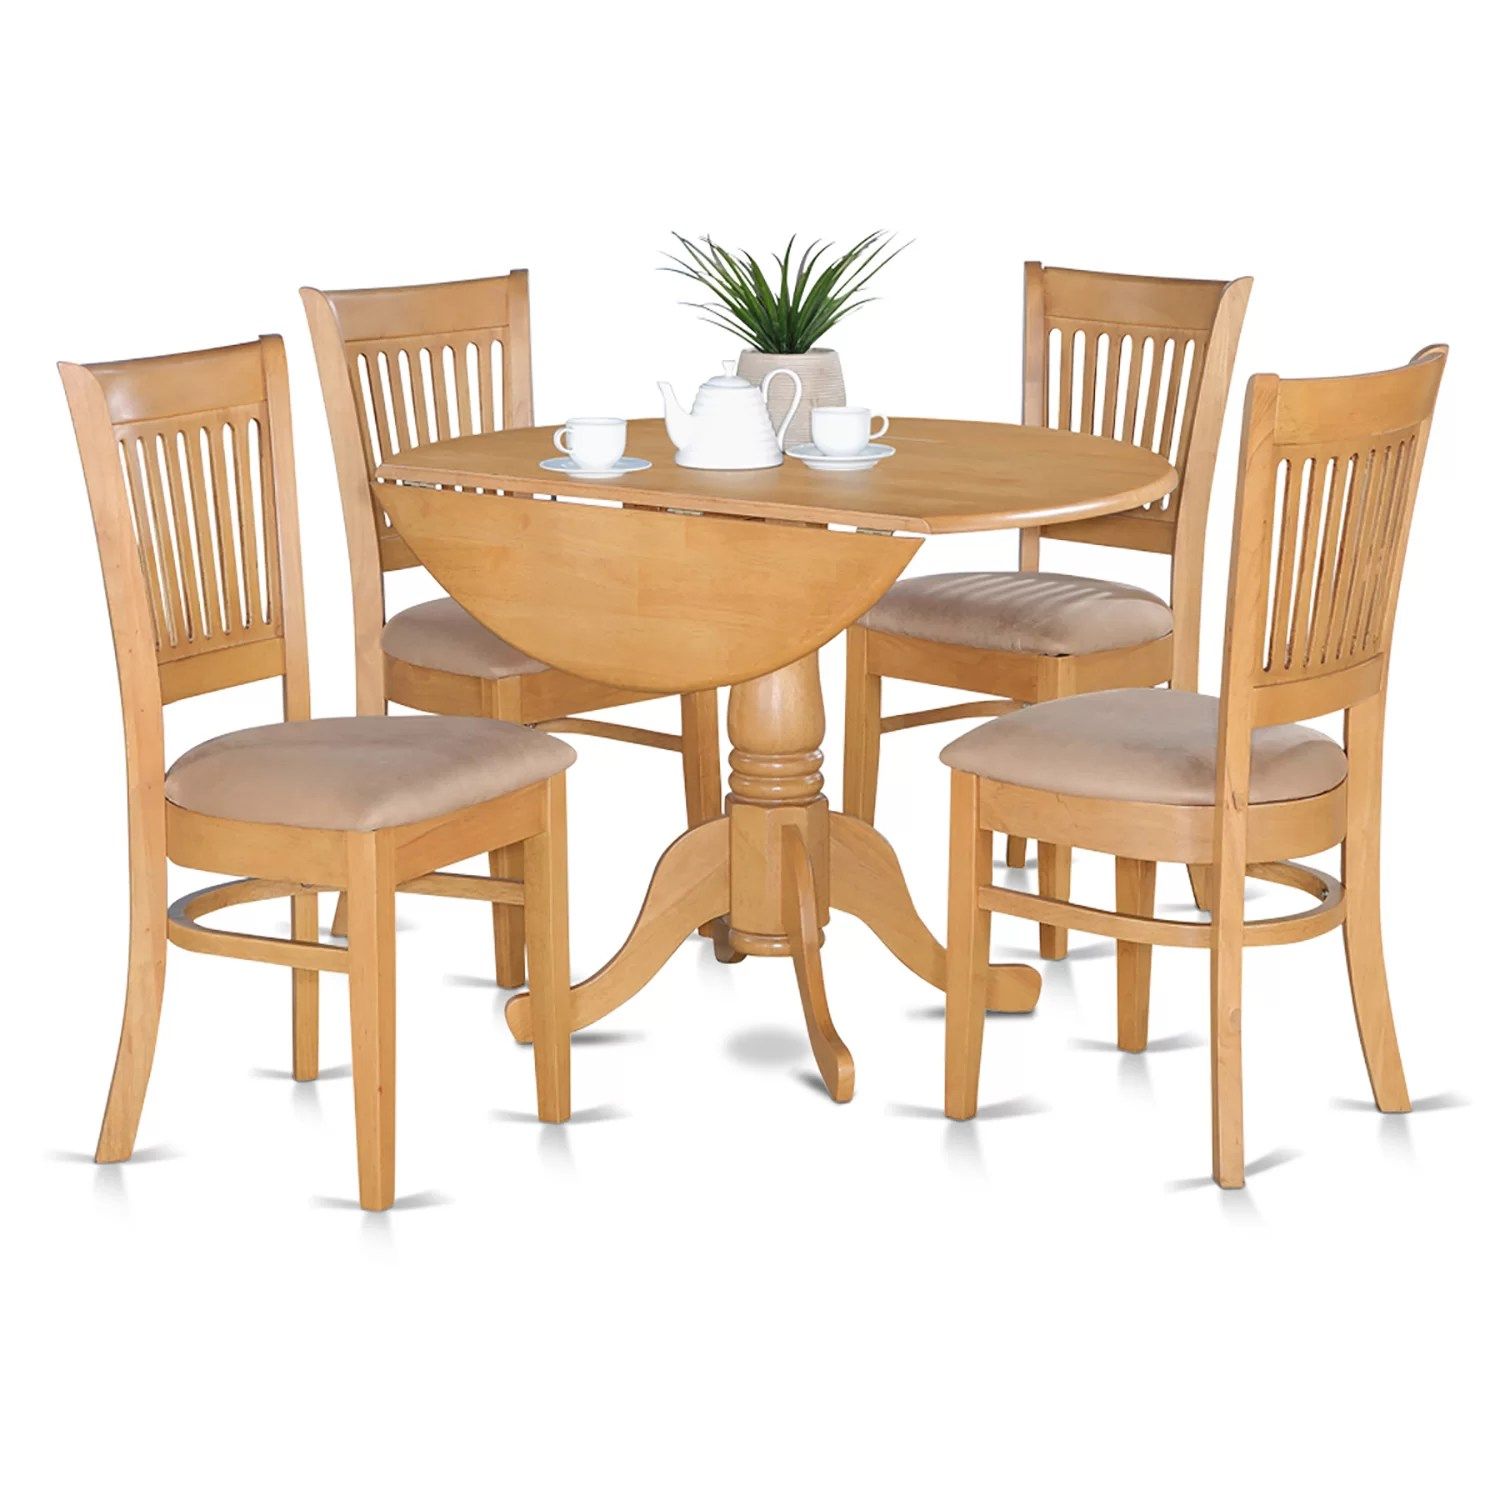 Drop Leaf Table With Chairs East West Dublin 5 Piece Dining Set And Reviews Wayfair